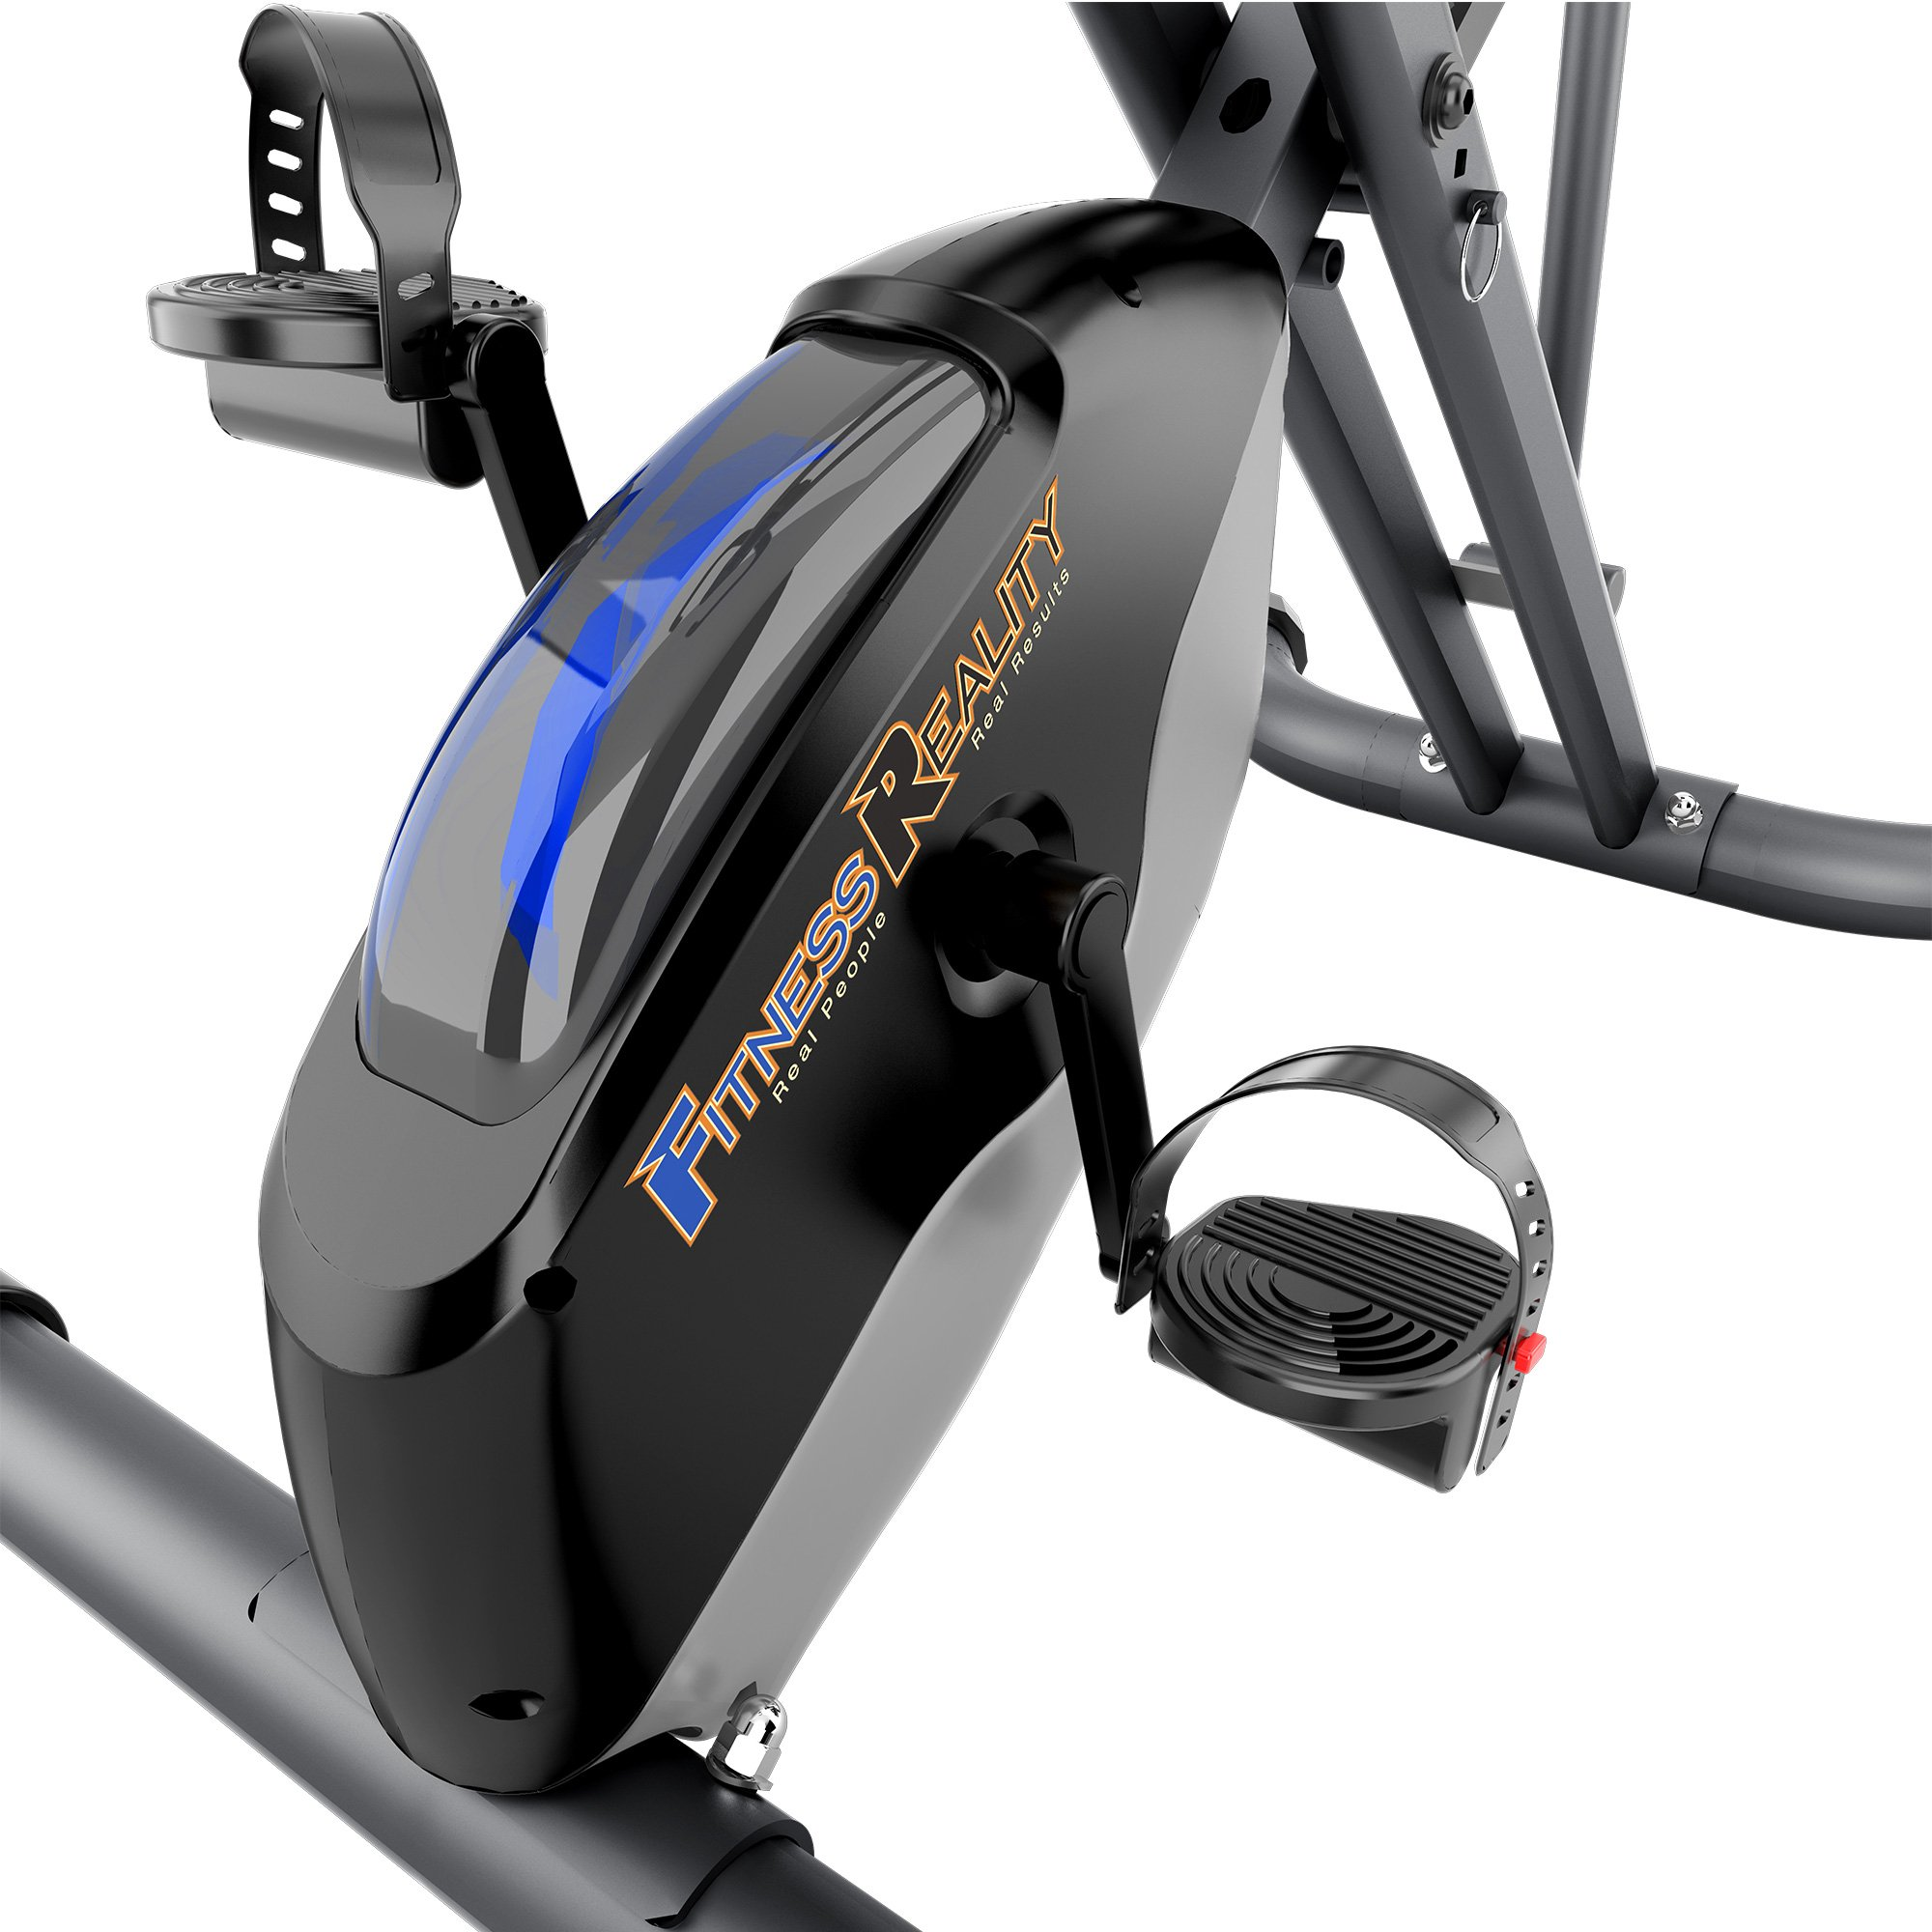 Fitness Reality U2500 Super Max Foldable Magnetic Upright Bike, 400 Lbs by Fitness Reality (Image #6)